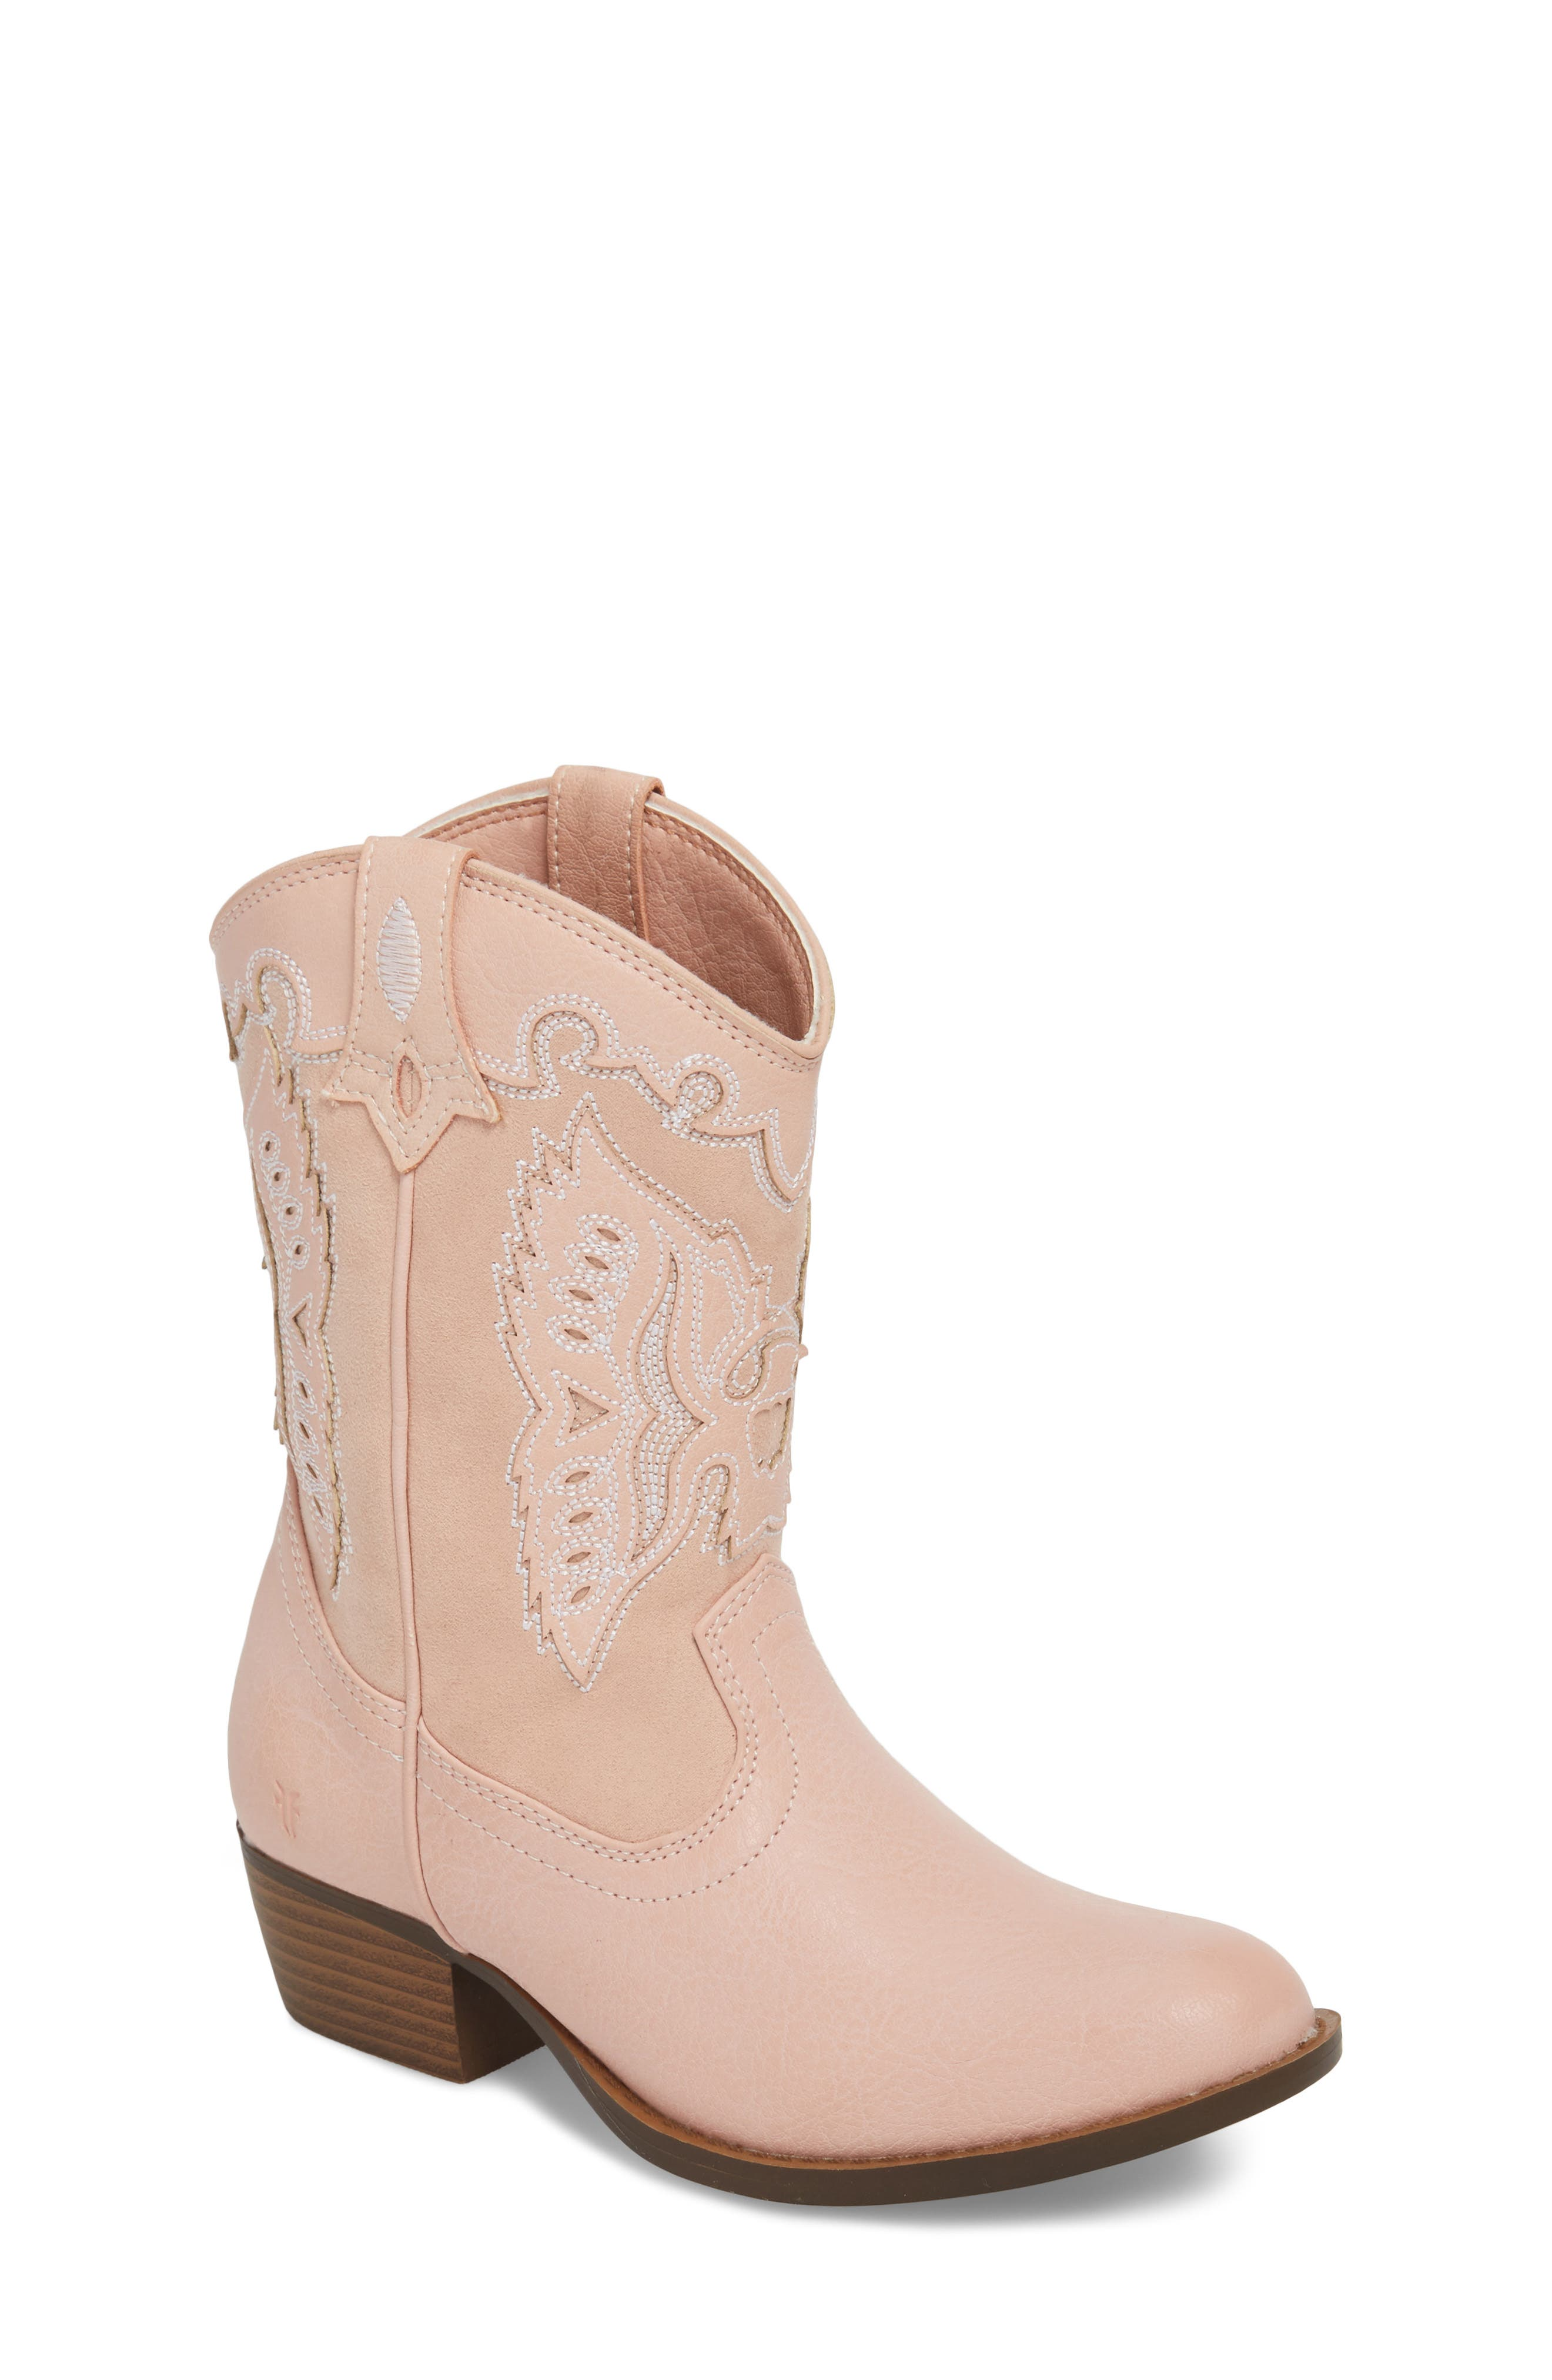 Alternate Image 1 Selected - Frye Carson Firebird Cowgirl Boot (Toddler, Little Kid & Big Kid)